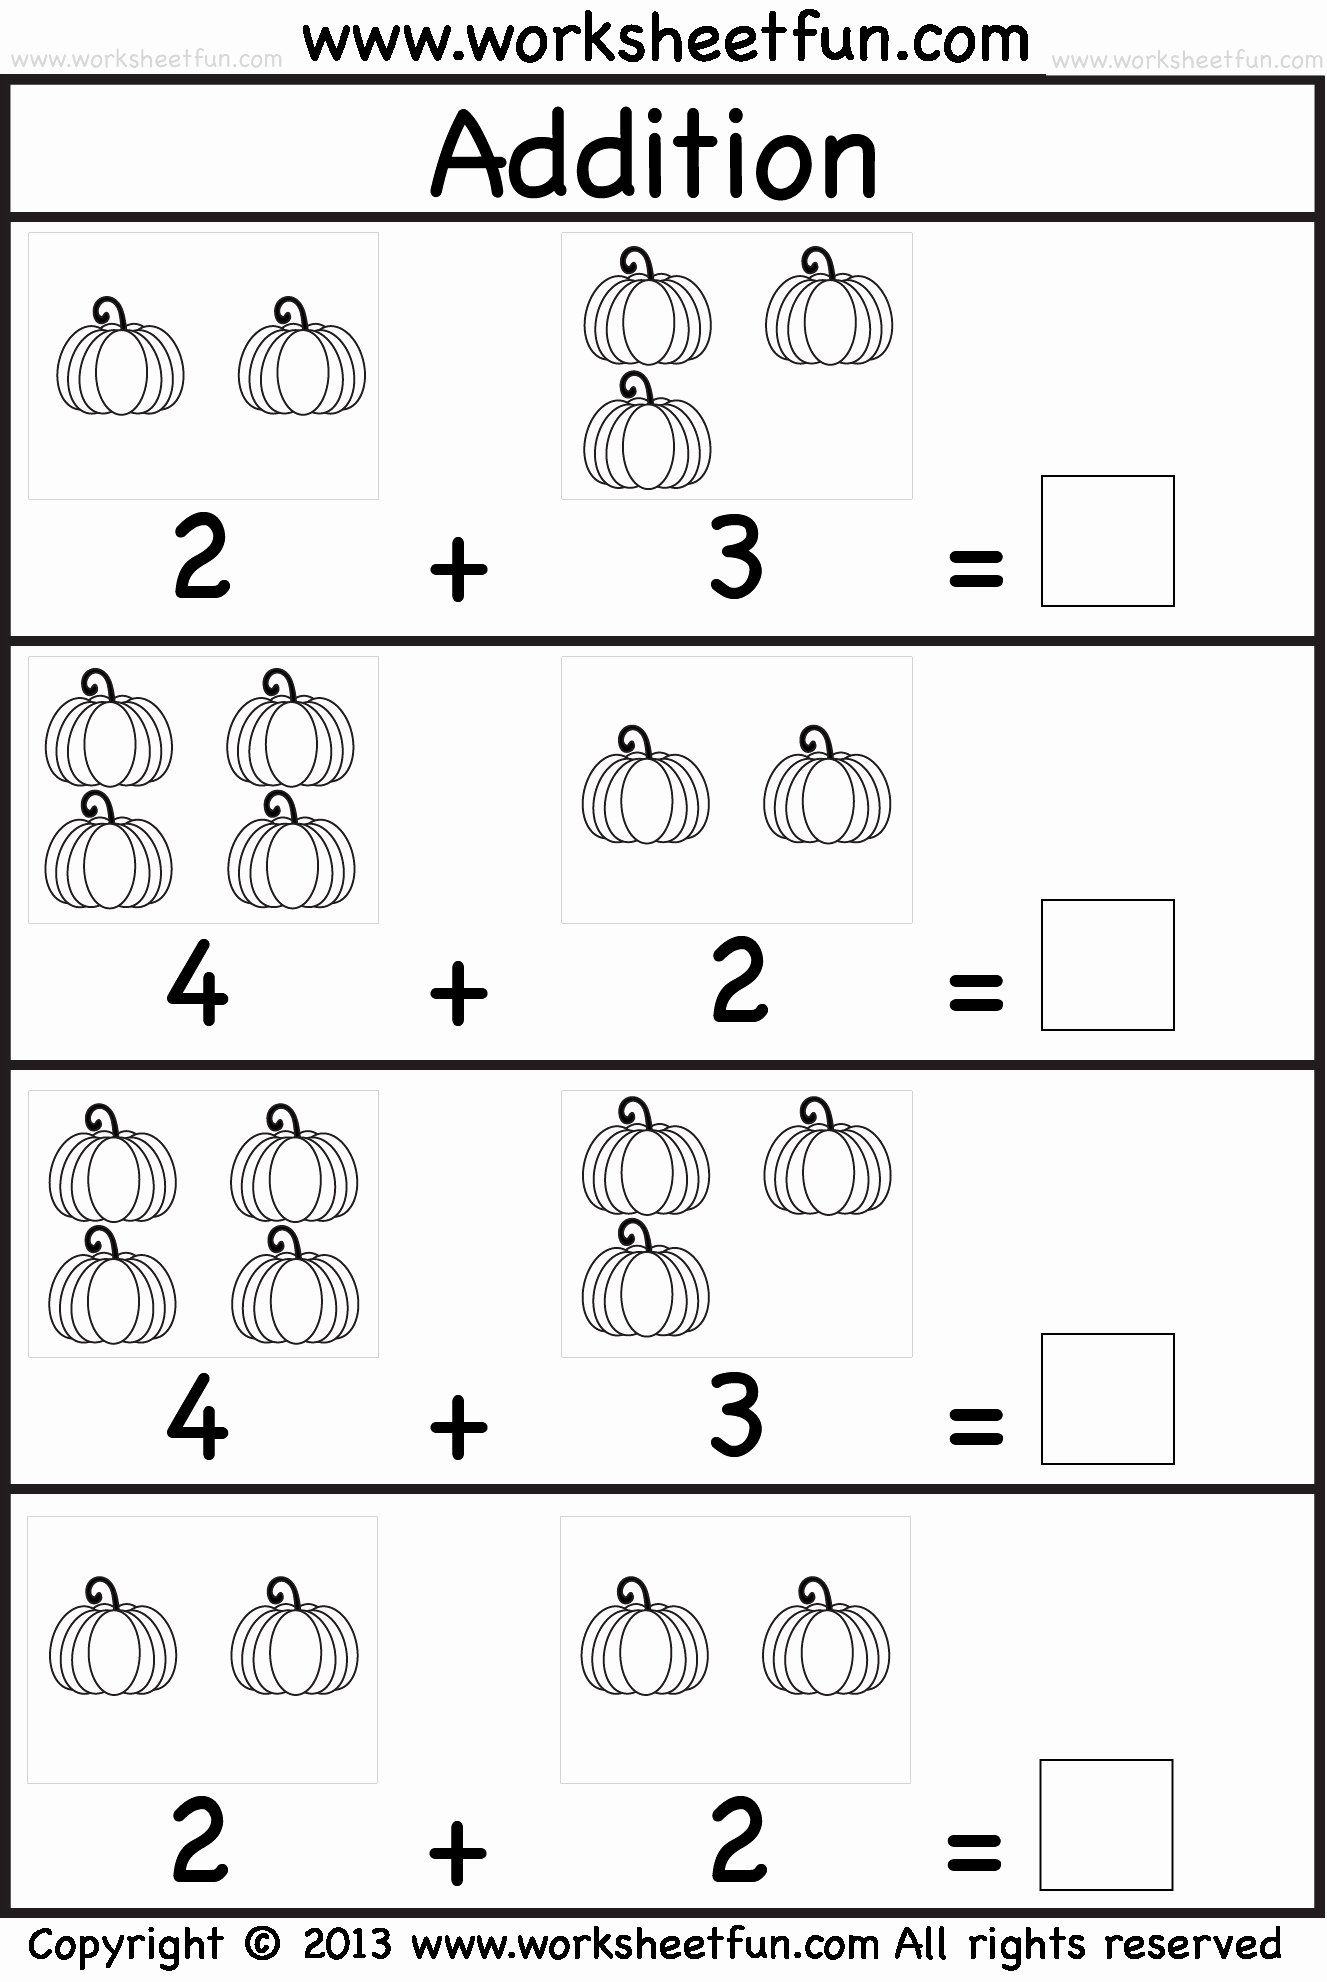 Math Worksheets for Preschoolers Beautiful Kindergarten Math Worksheets for Printable Free Sums with